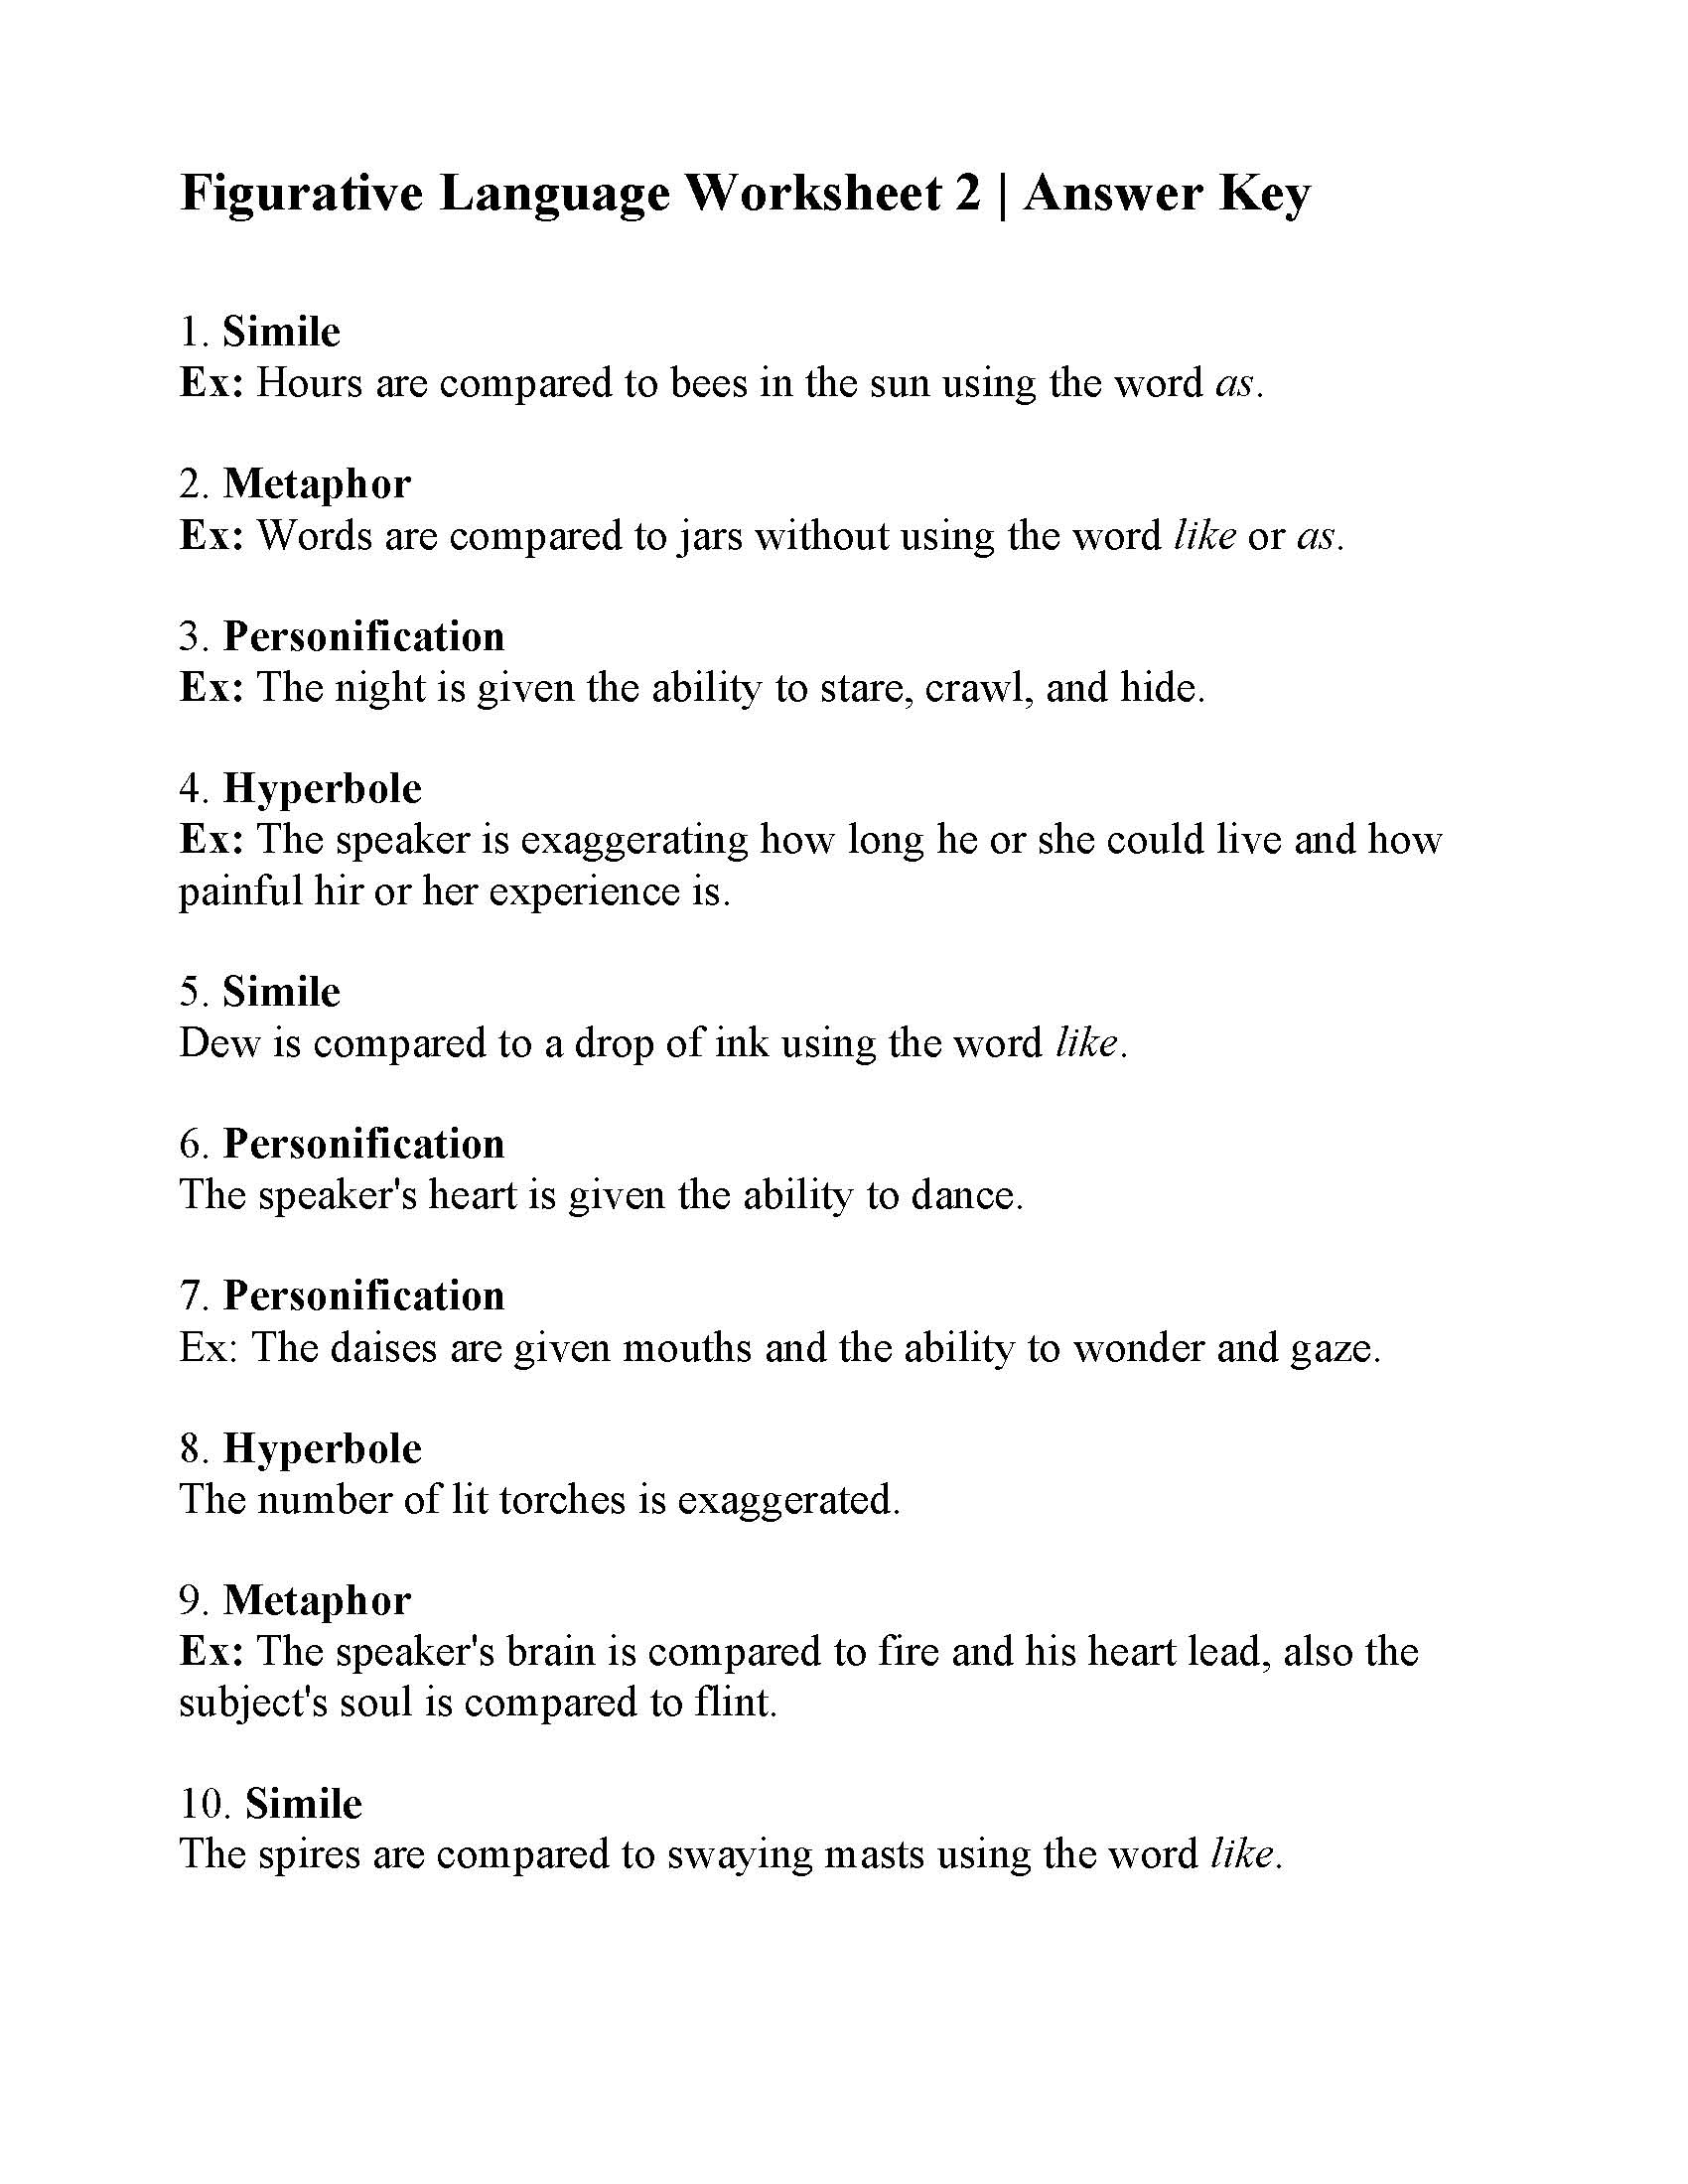 Figurative Language Worksheet 2 | Answers